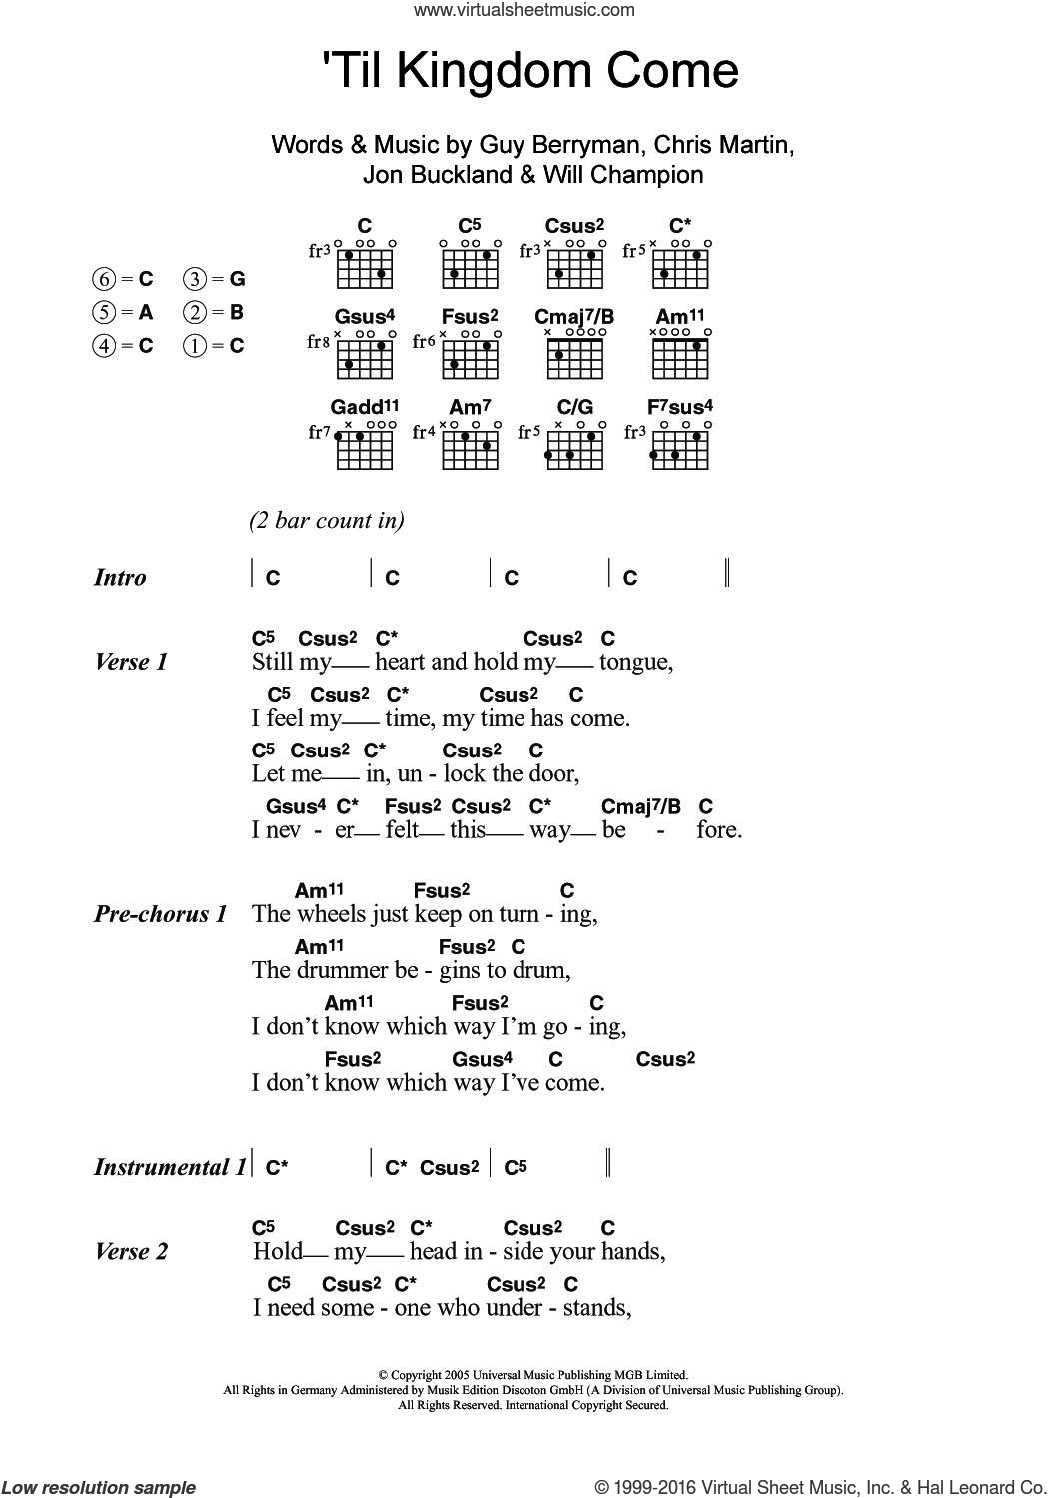 Heart of worship guitar chords images guitar chords examples csus2 guitar chord choice image guitar chords examples coldplay til kingdom come sheet music for guitar hexwebz Choice Image